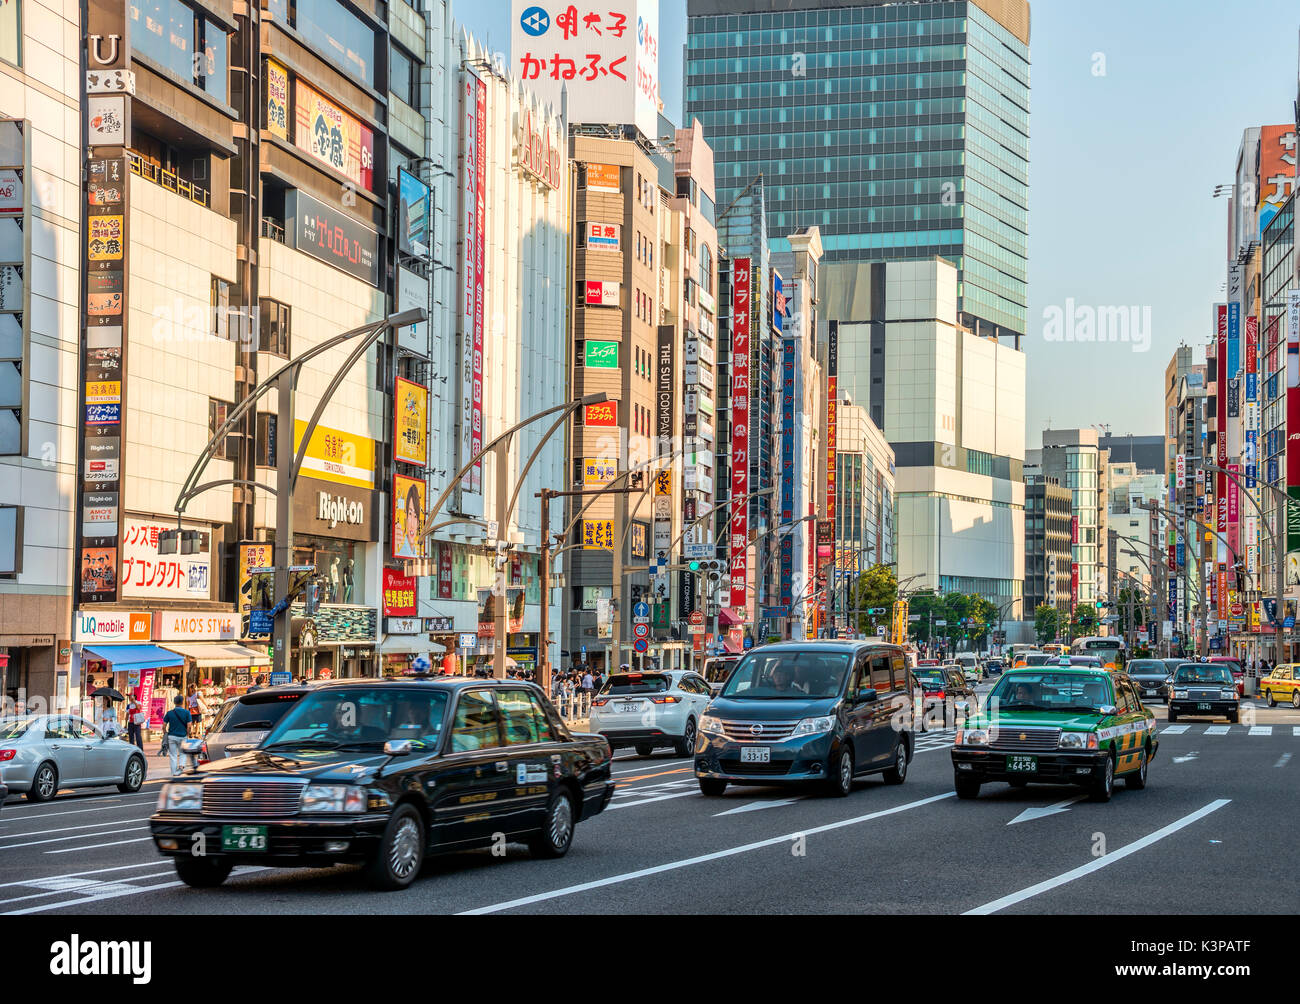 Cityscape at the Ueno Business District, Tokyo, Japan | Strassenszene im Ueno Geschaeftsviertel, Tokyo, Japan - Stock Image